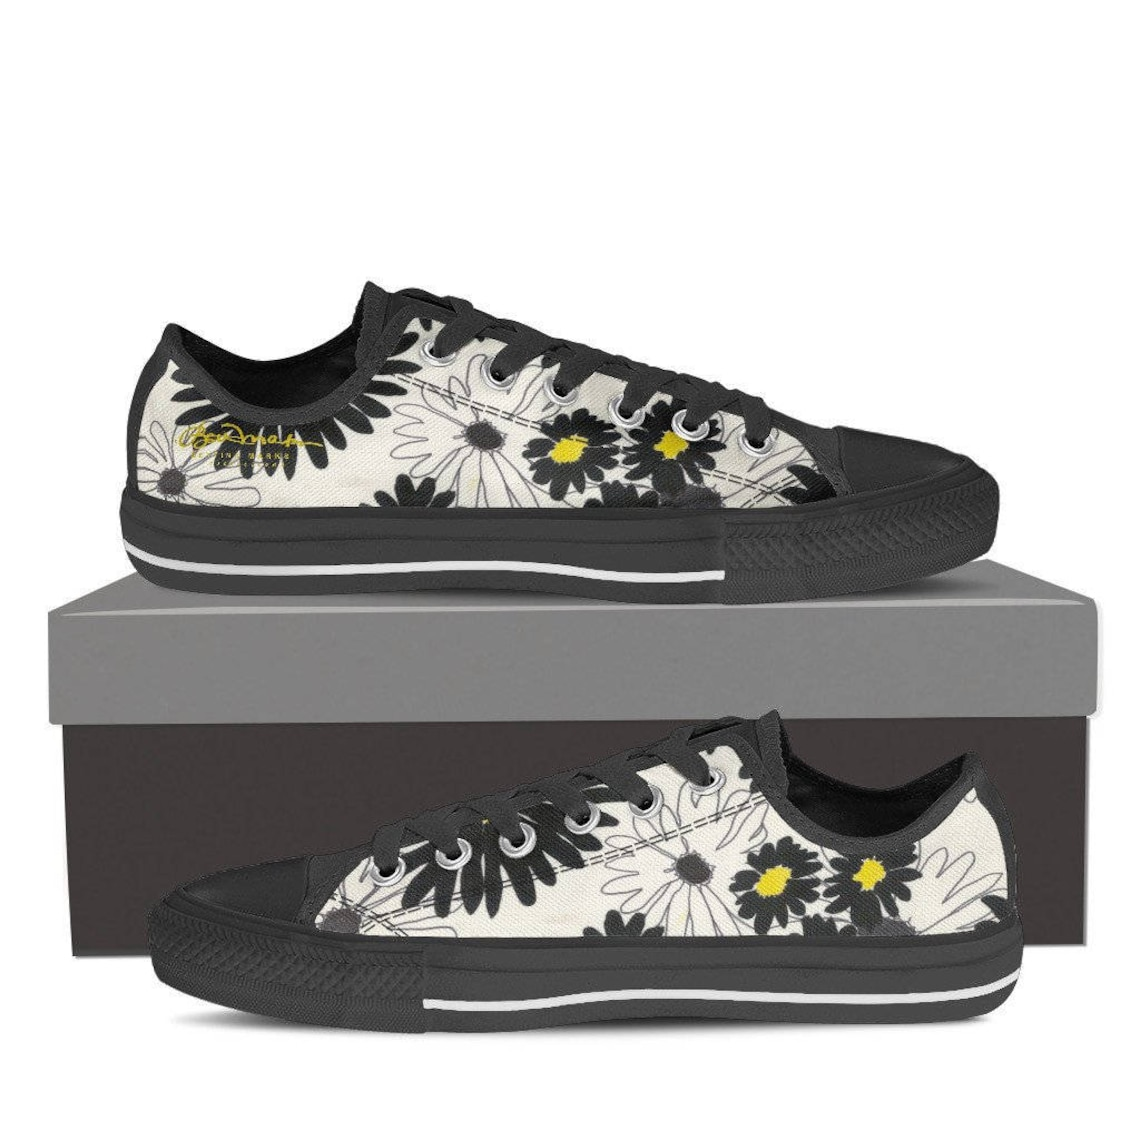 Daisy Women's Black and White Low Top Canvas Sneakers